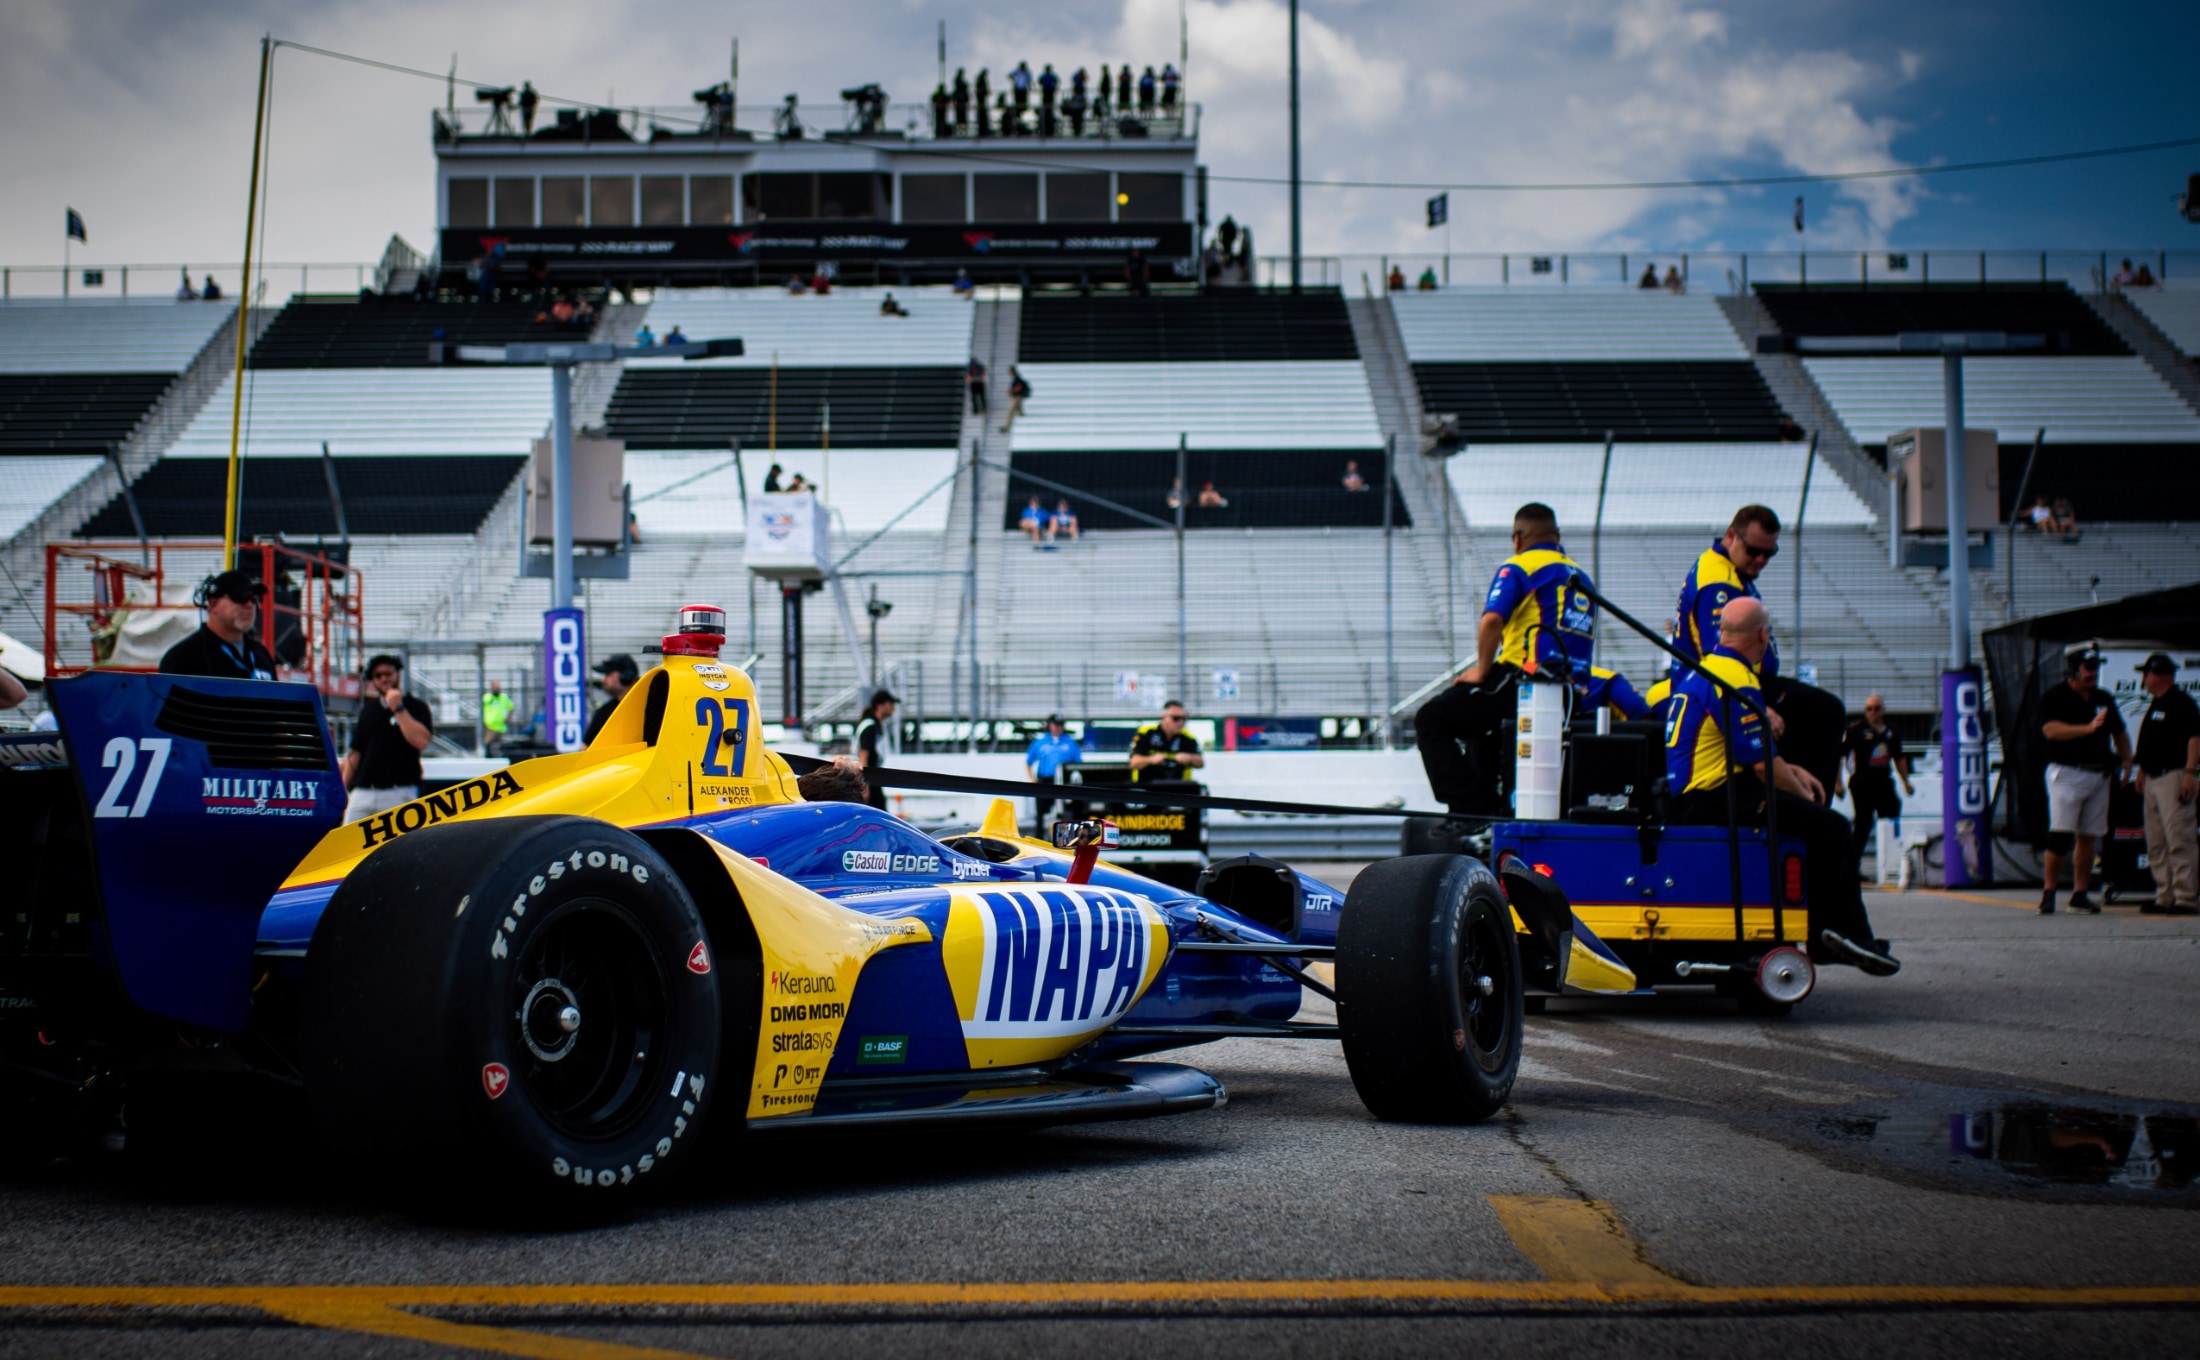 Alexander Rossi NAPA Andretti Indy car at 2019 Gateway race